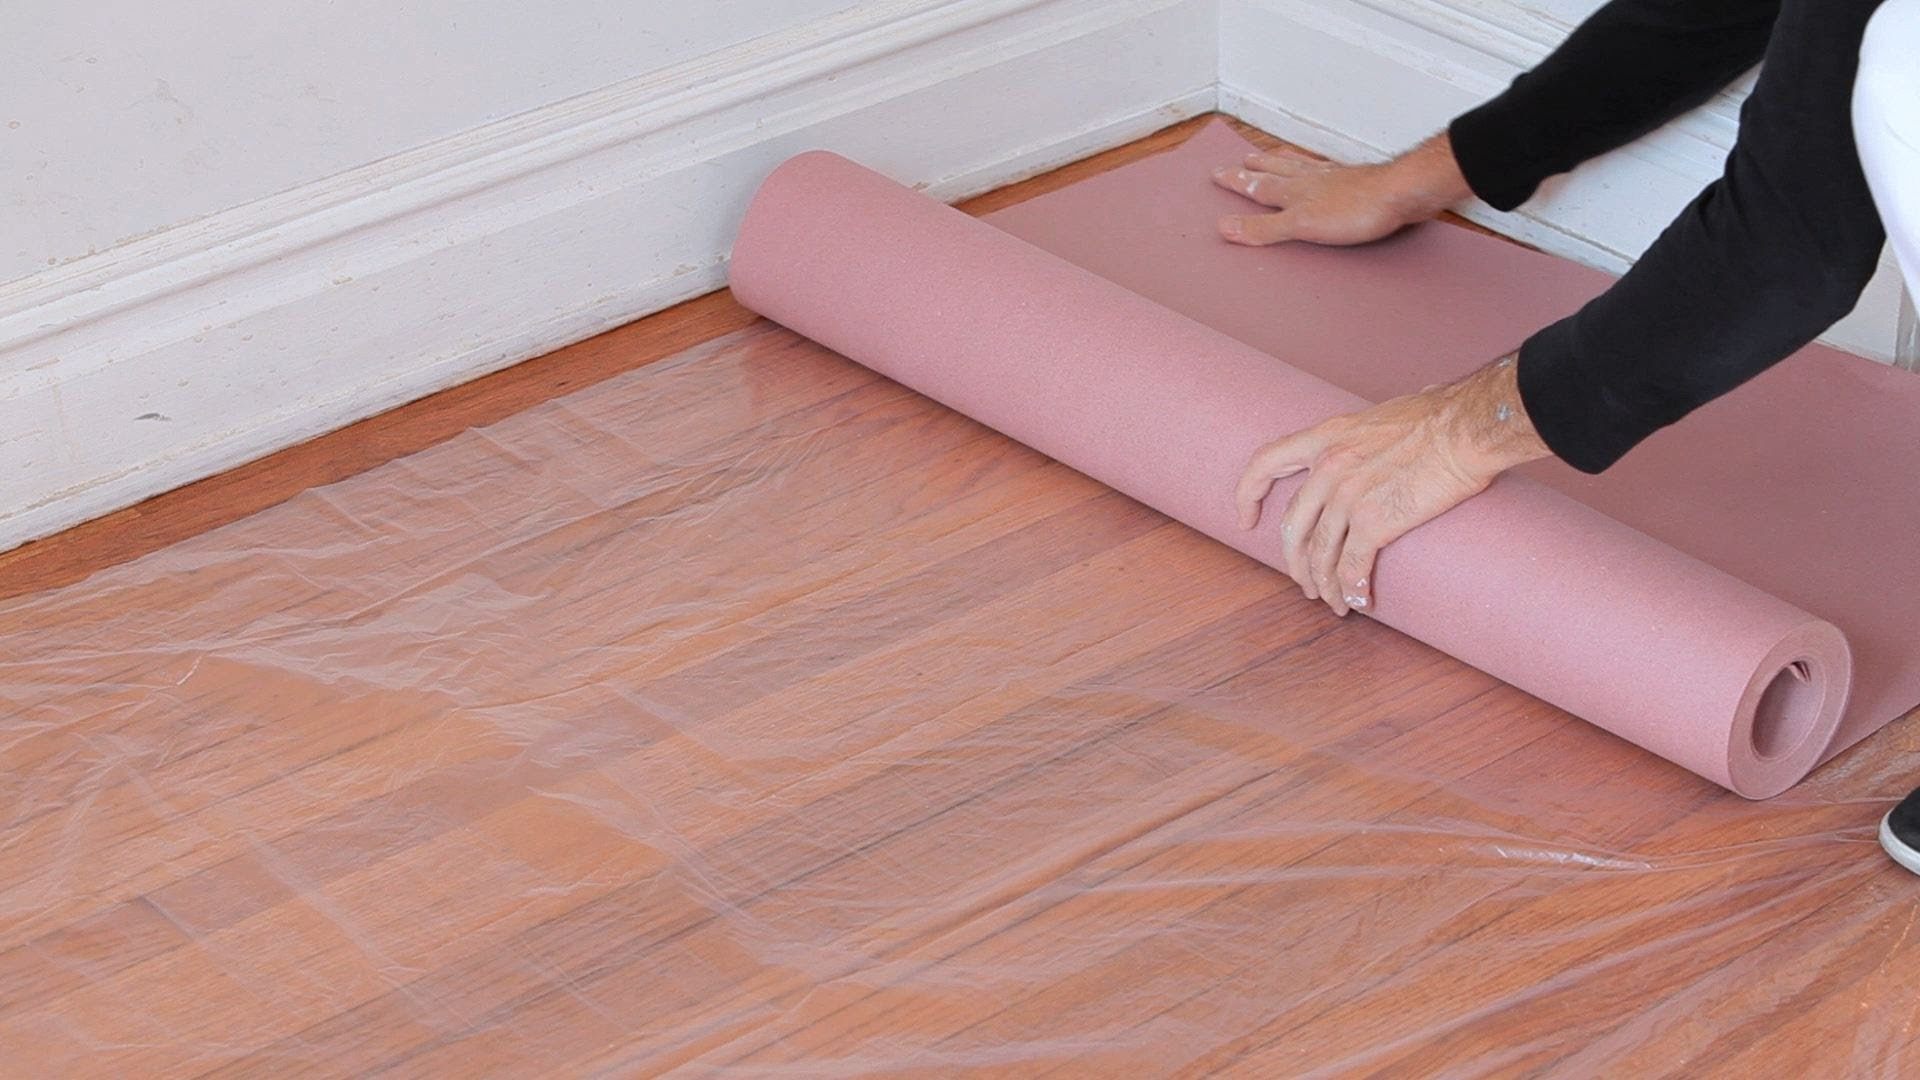 Protect Your Floors and Carpets During a Household Move